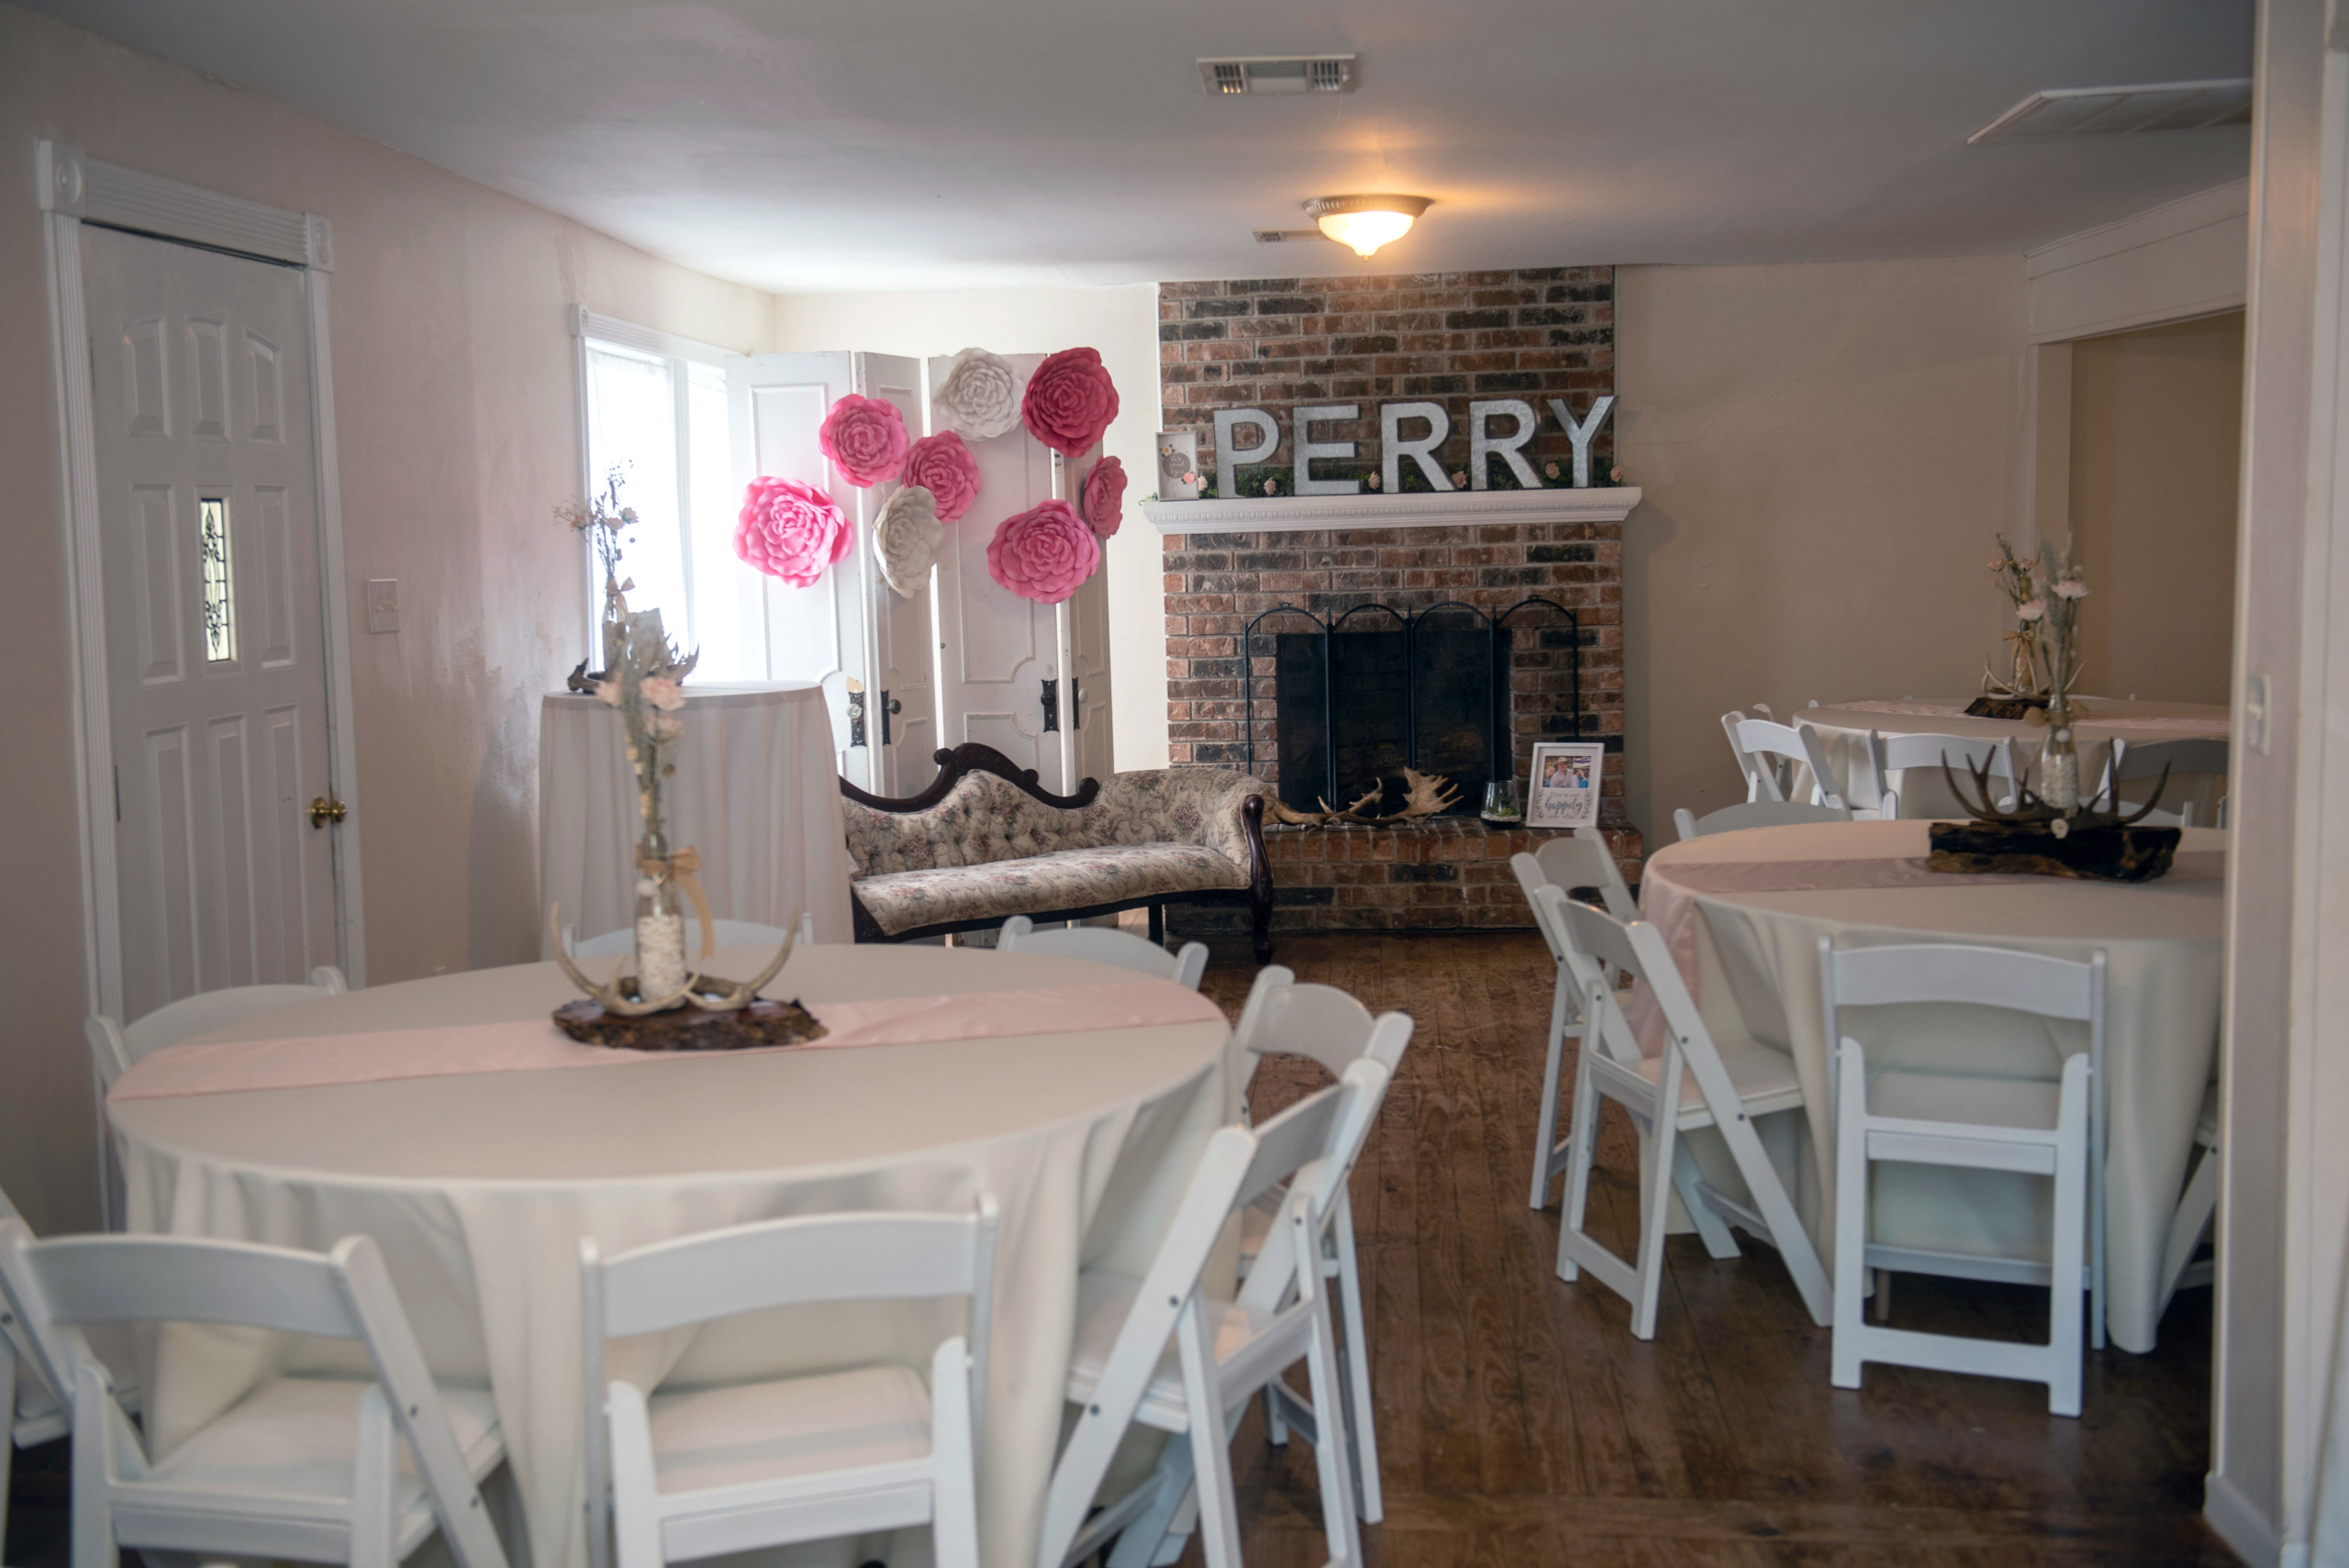 event setup for a bridal shower with white linens and pink balloons in a window - Covid-19 Weddings